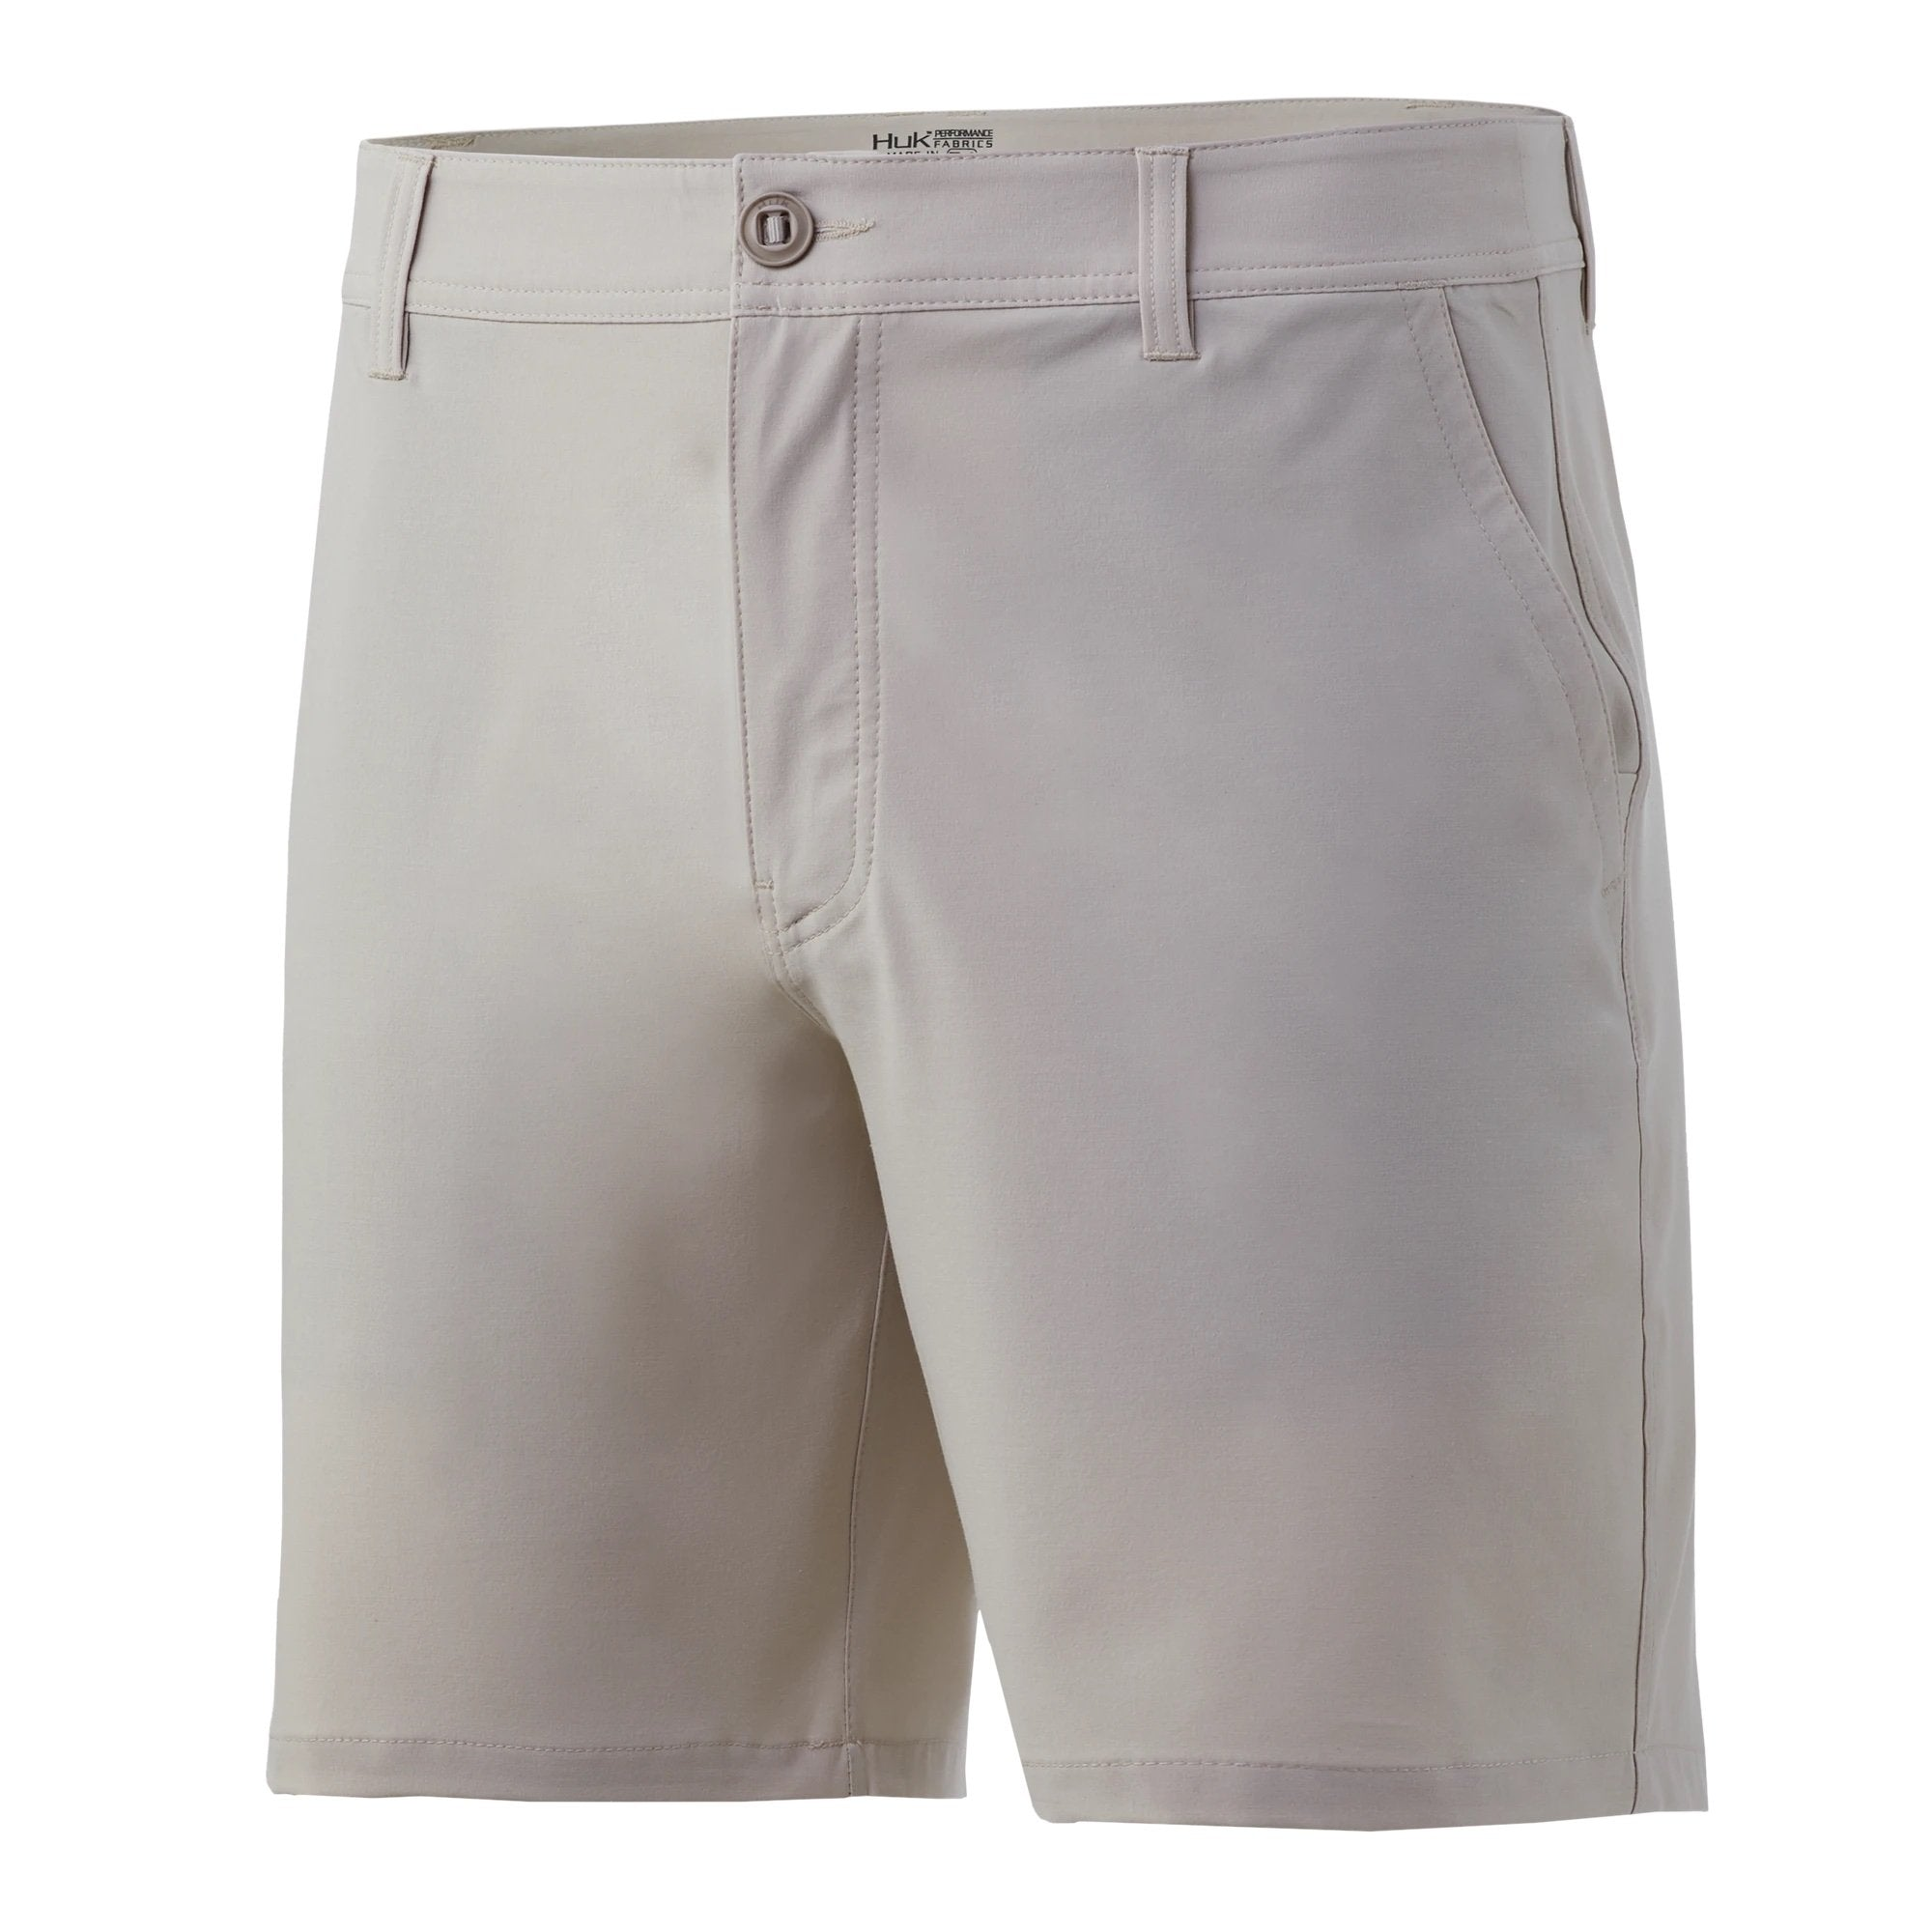 HUK FISHING Men's Shorts Huk Waypoint Short || David's Clothing